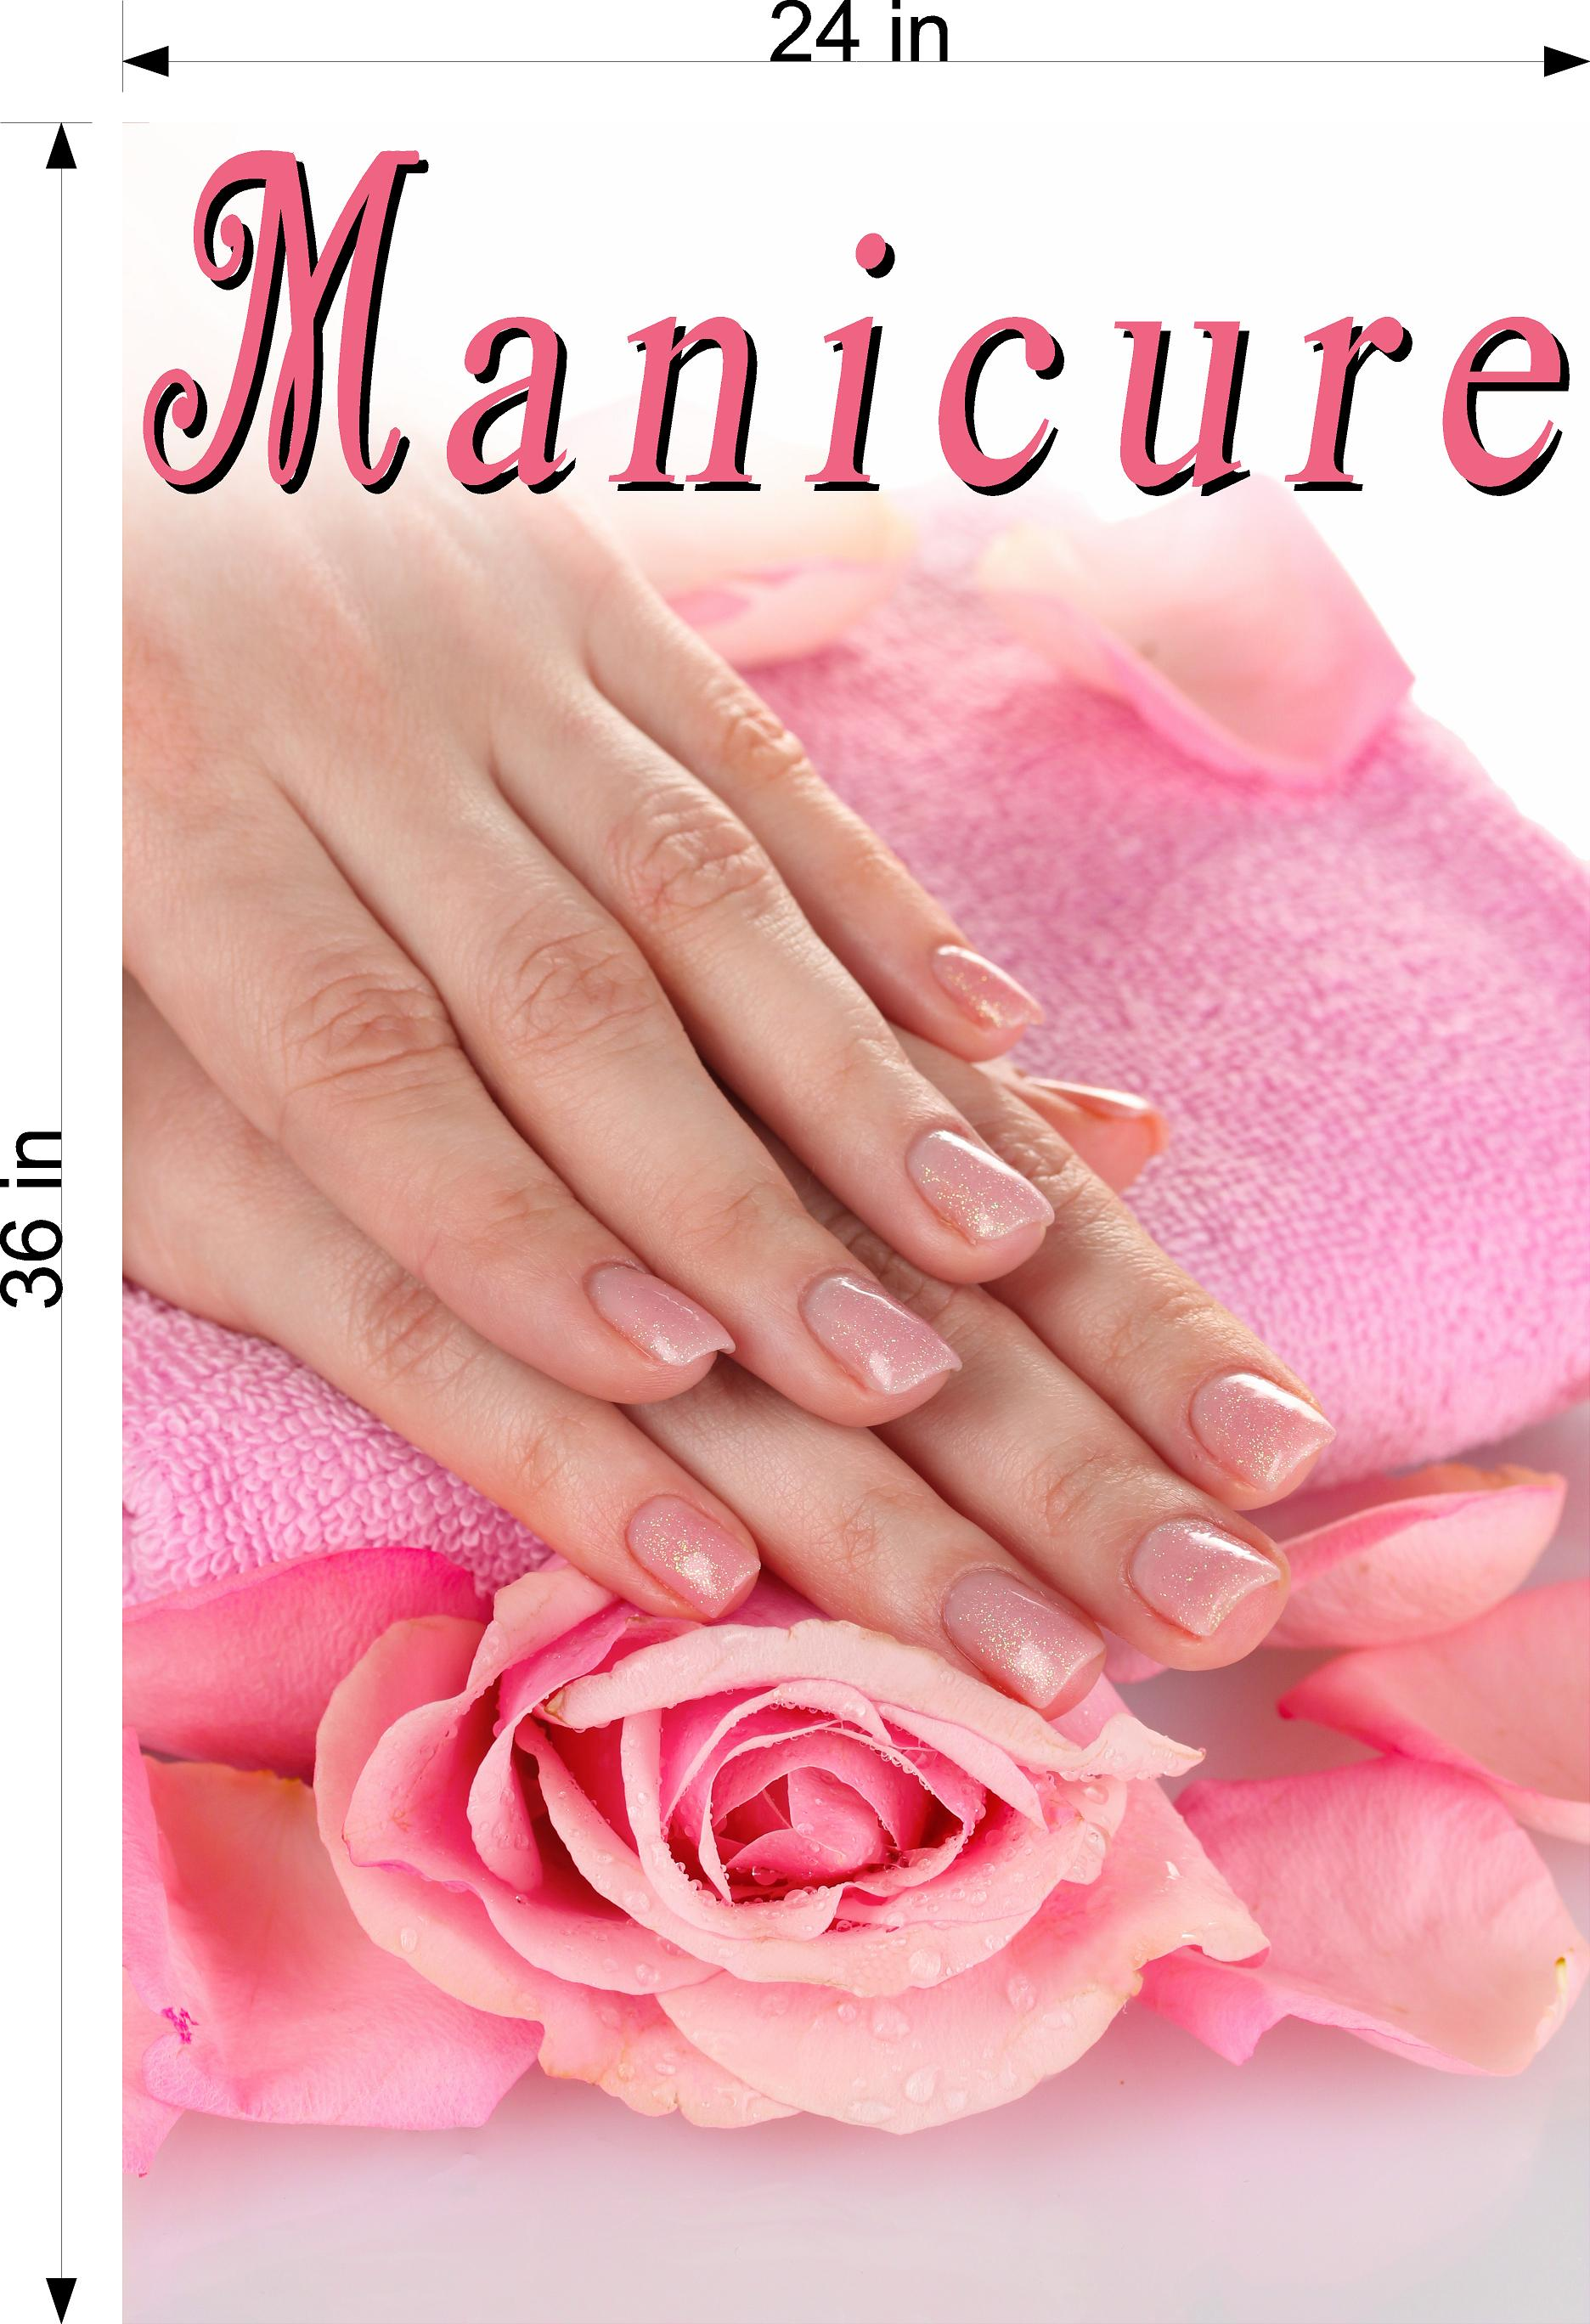 Manicure 27 Wallpaper Fabric Poster Decal with Adhesive Backing Wall Sticker Decor Indoors Interior Sign Vertical